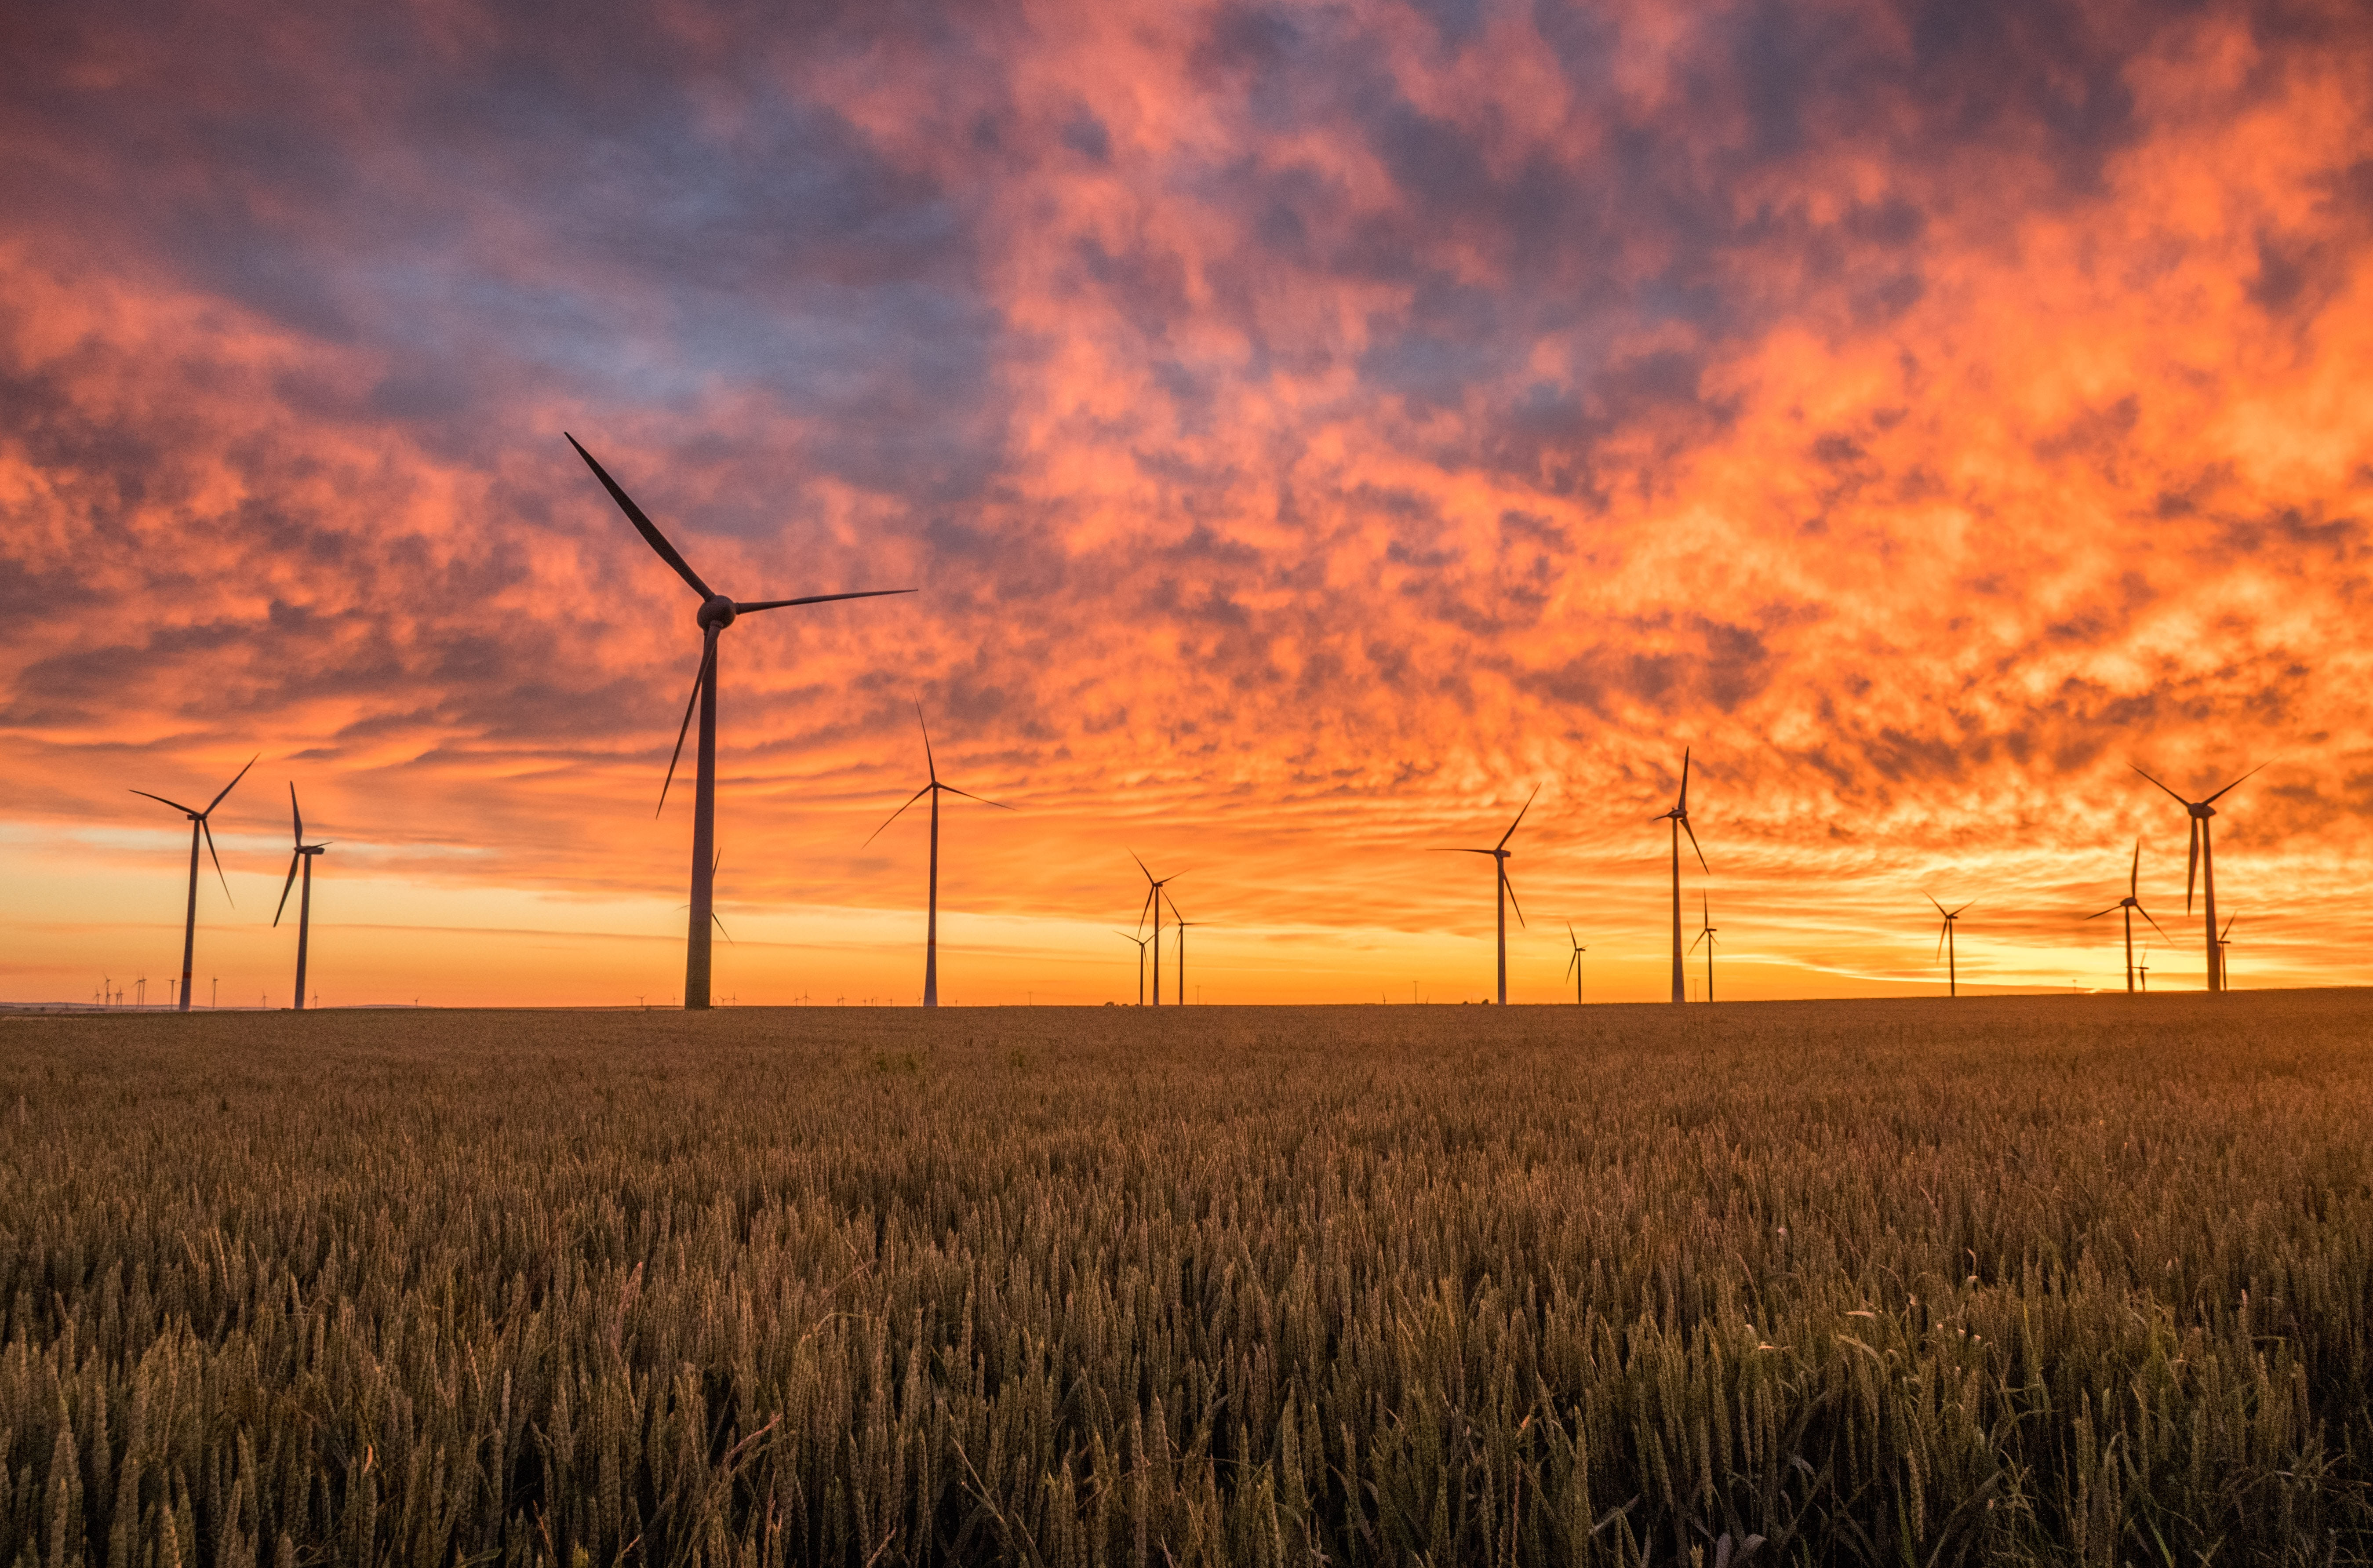 landscape photography of grass field with windmills under orange sunset